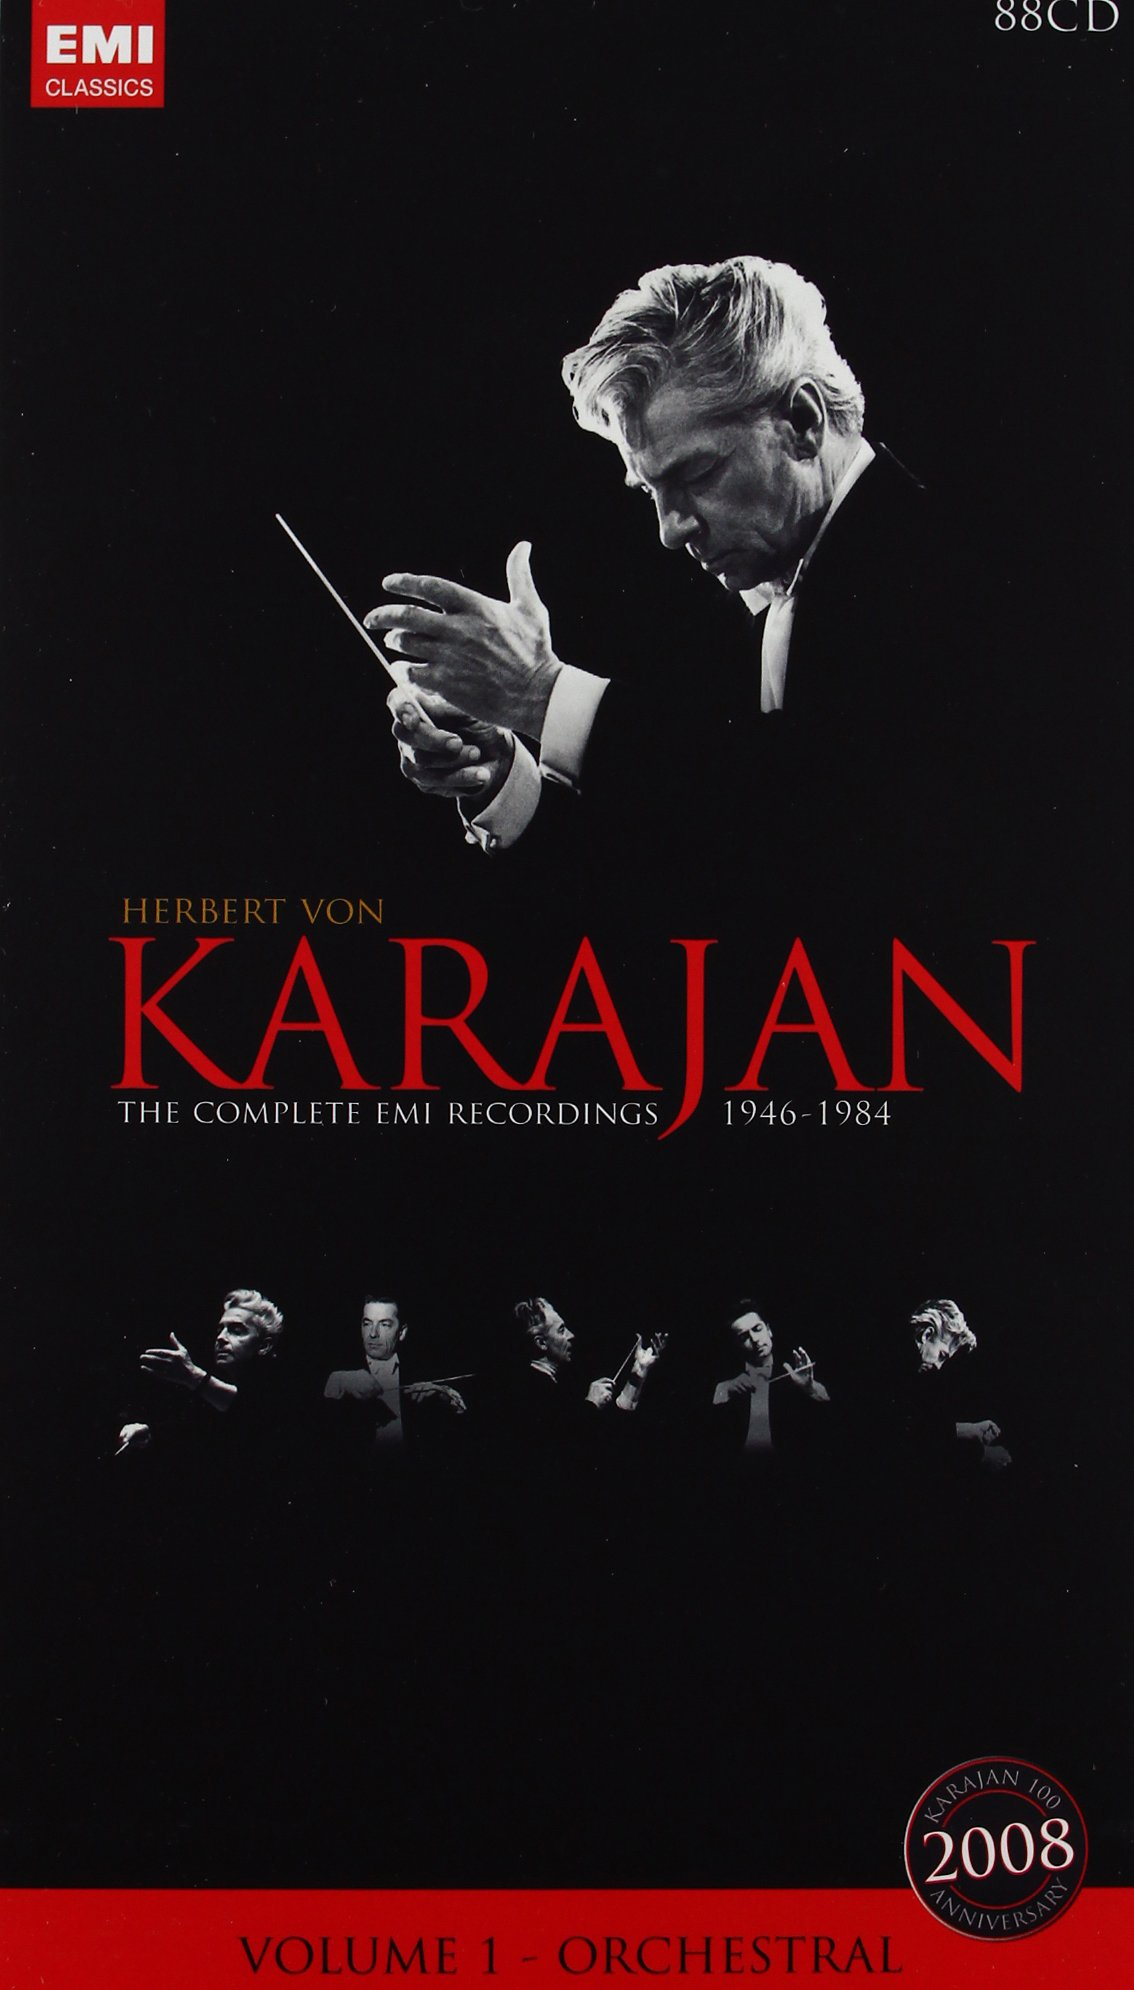 Herbert von Karajan - Complete EMI Recordings 1946-1984, Vol. 1: Orchestral by CLASSICO